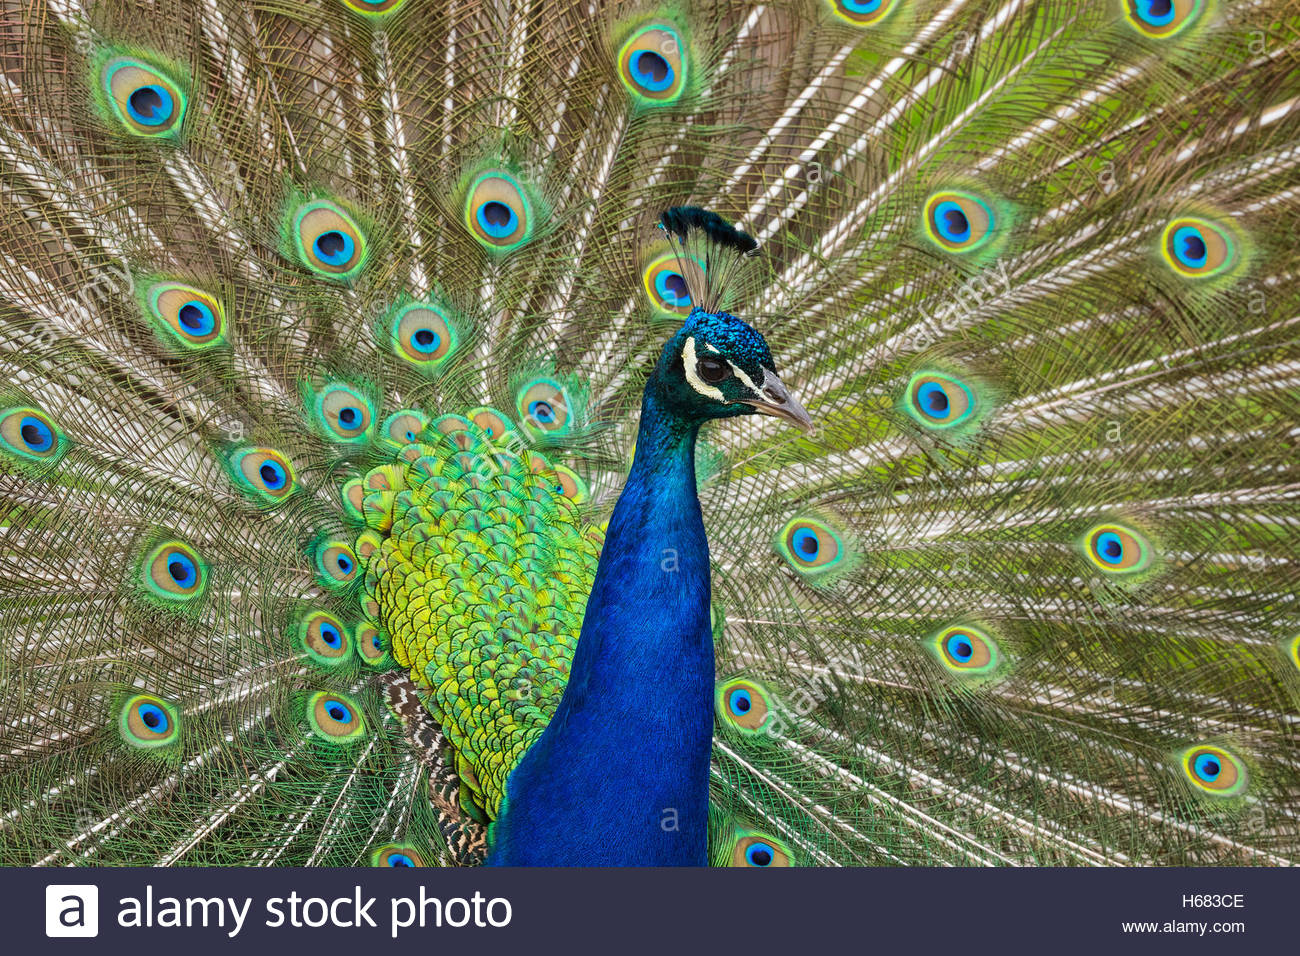 A captive peacock — specifically Indian peafowl or blue peafowl (Pavo cristatus) — fans out his tail feathers to - Stock Image